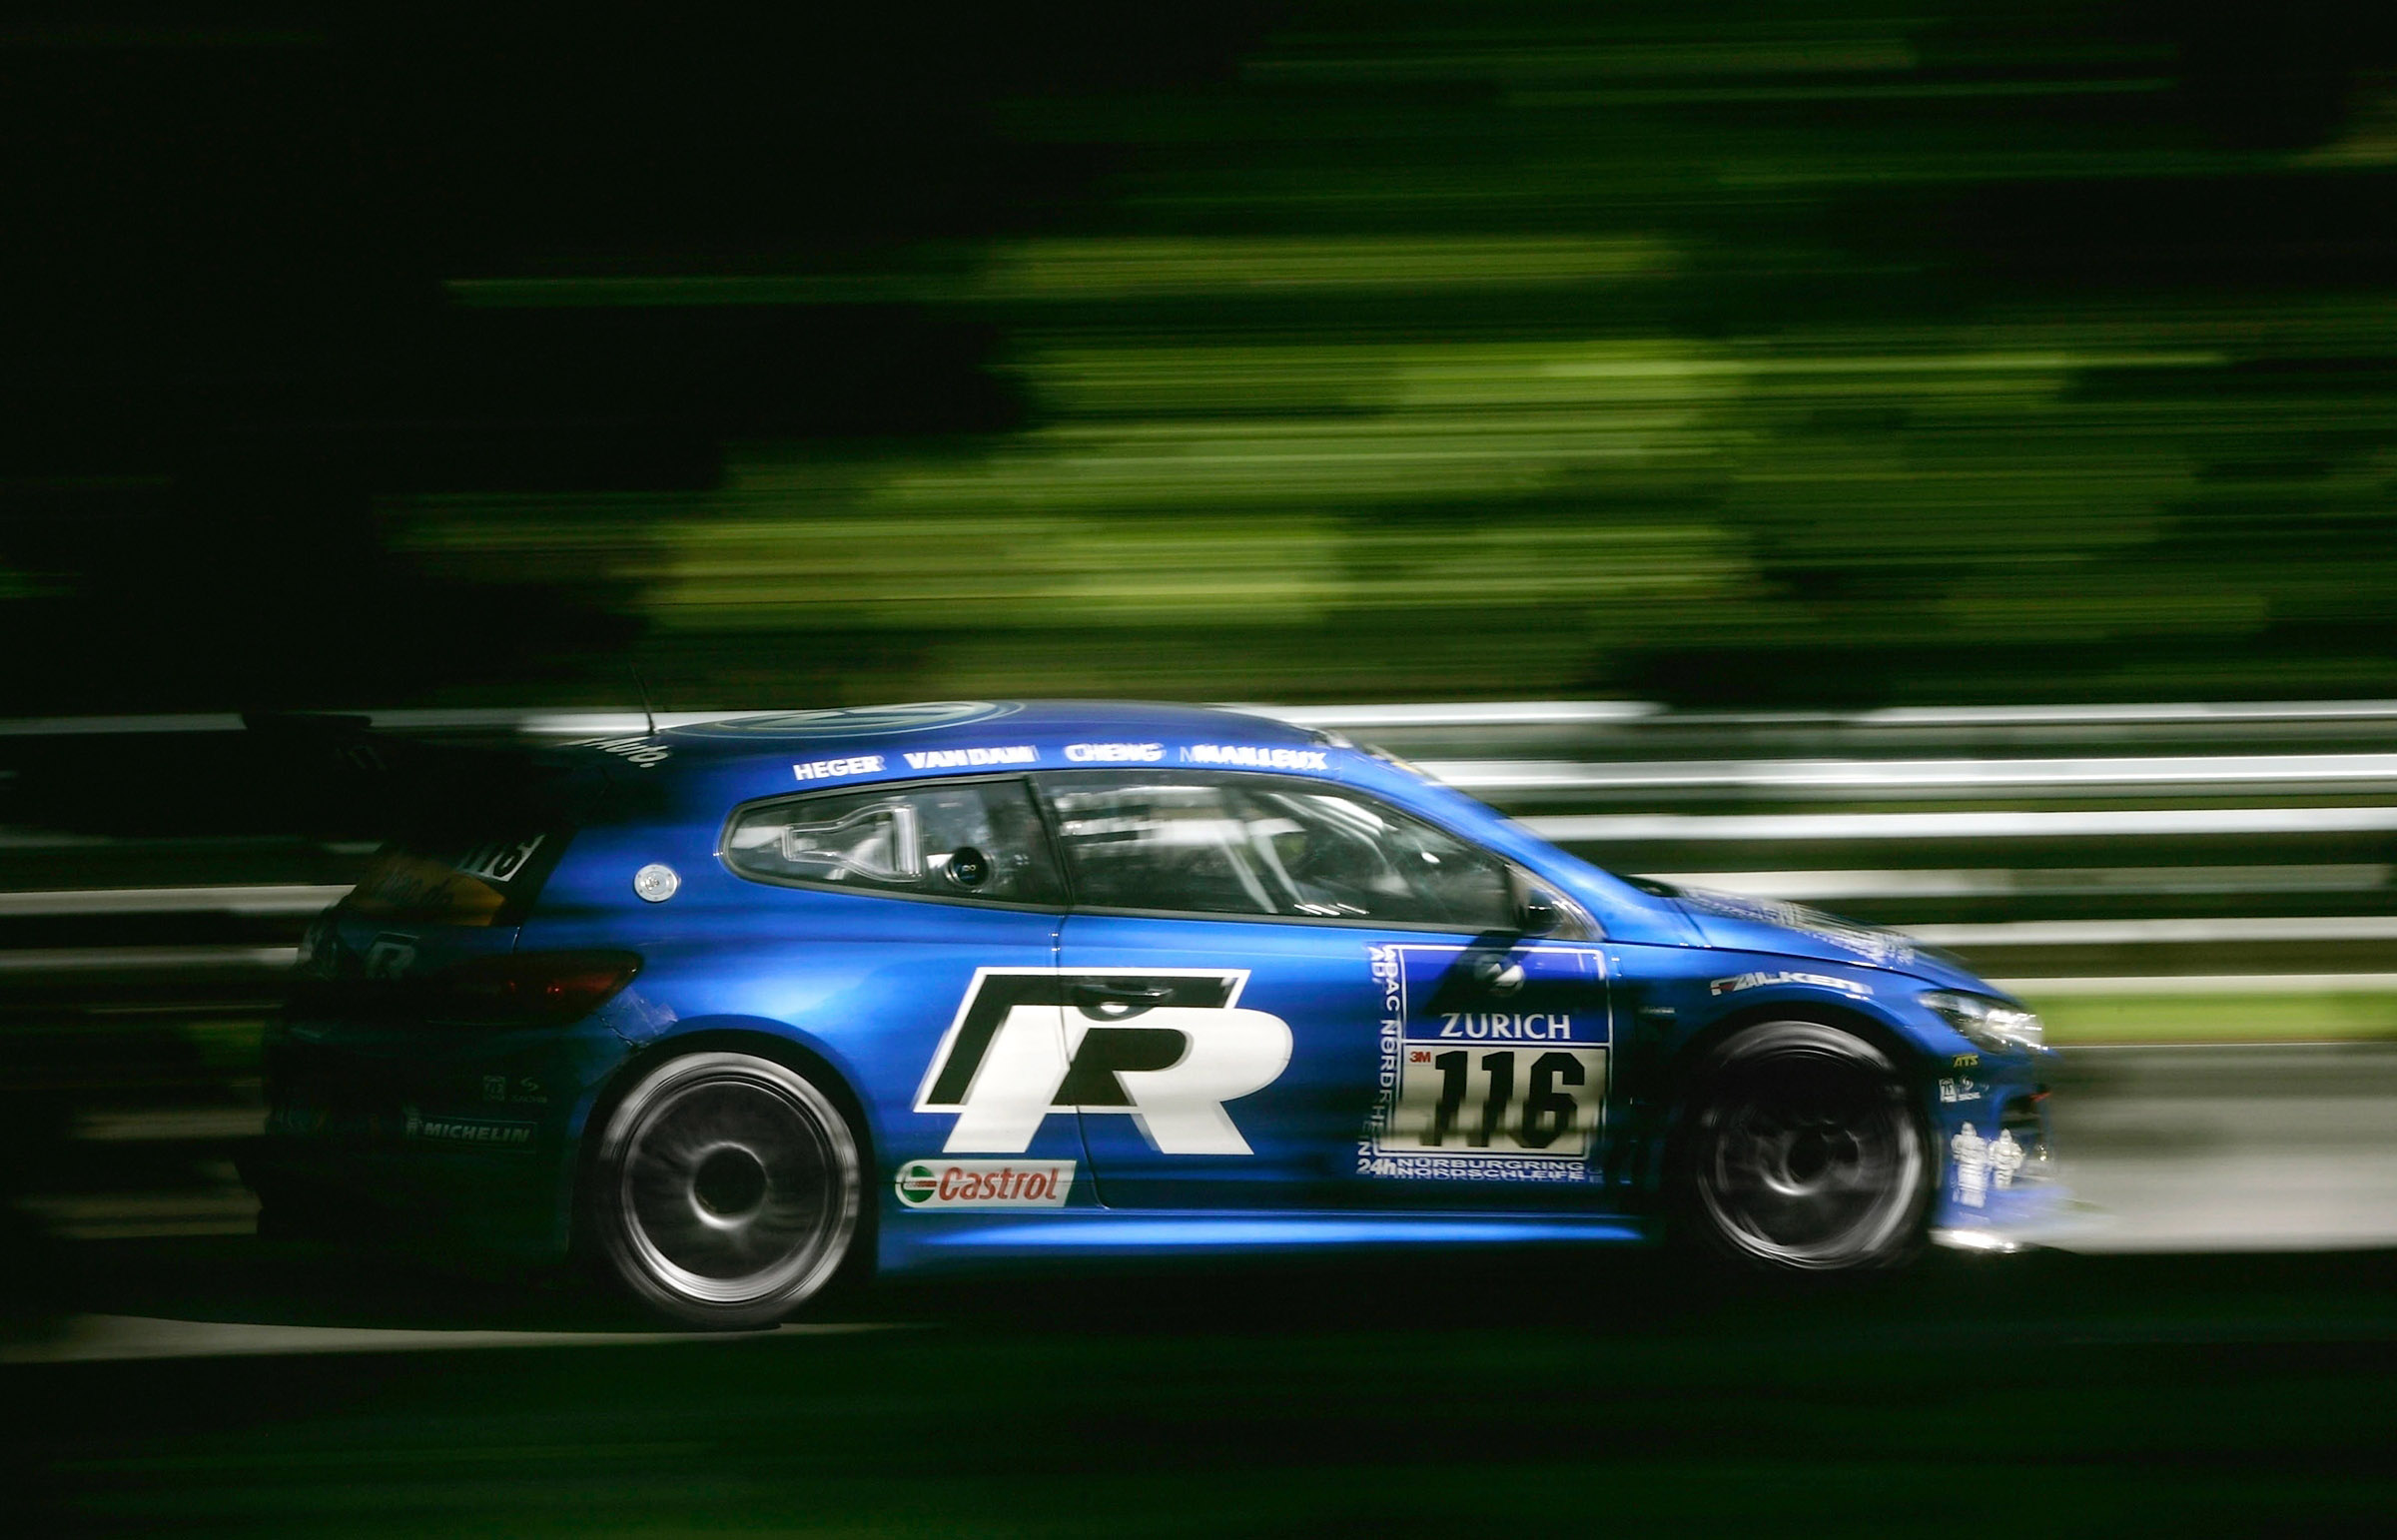 scirocco gt captures  class wins  nurburgring hrs